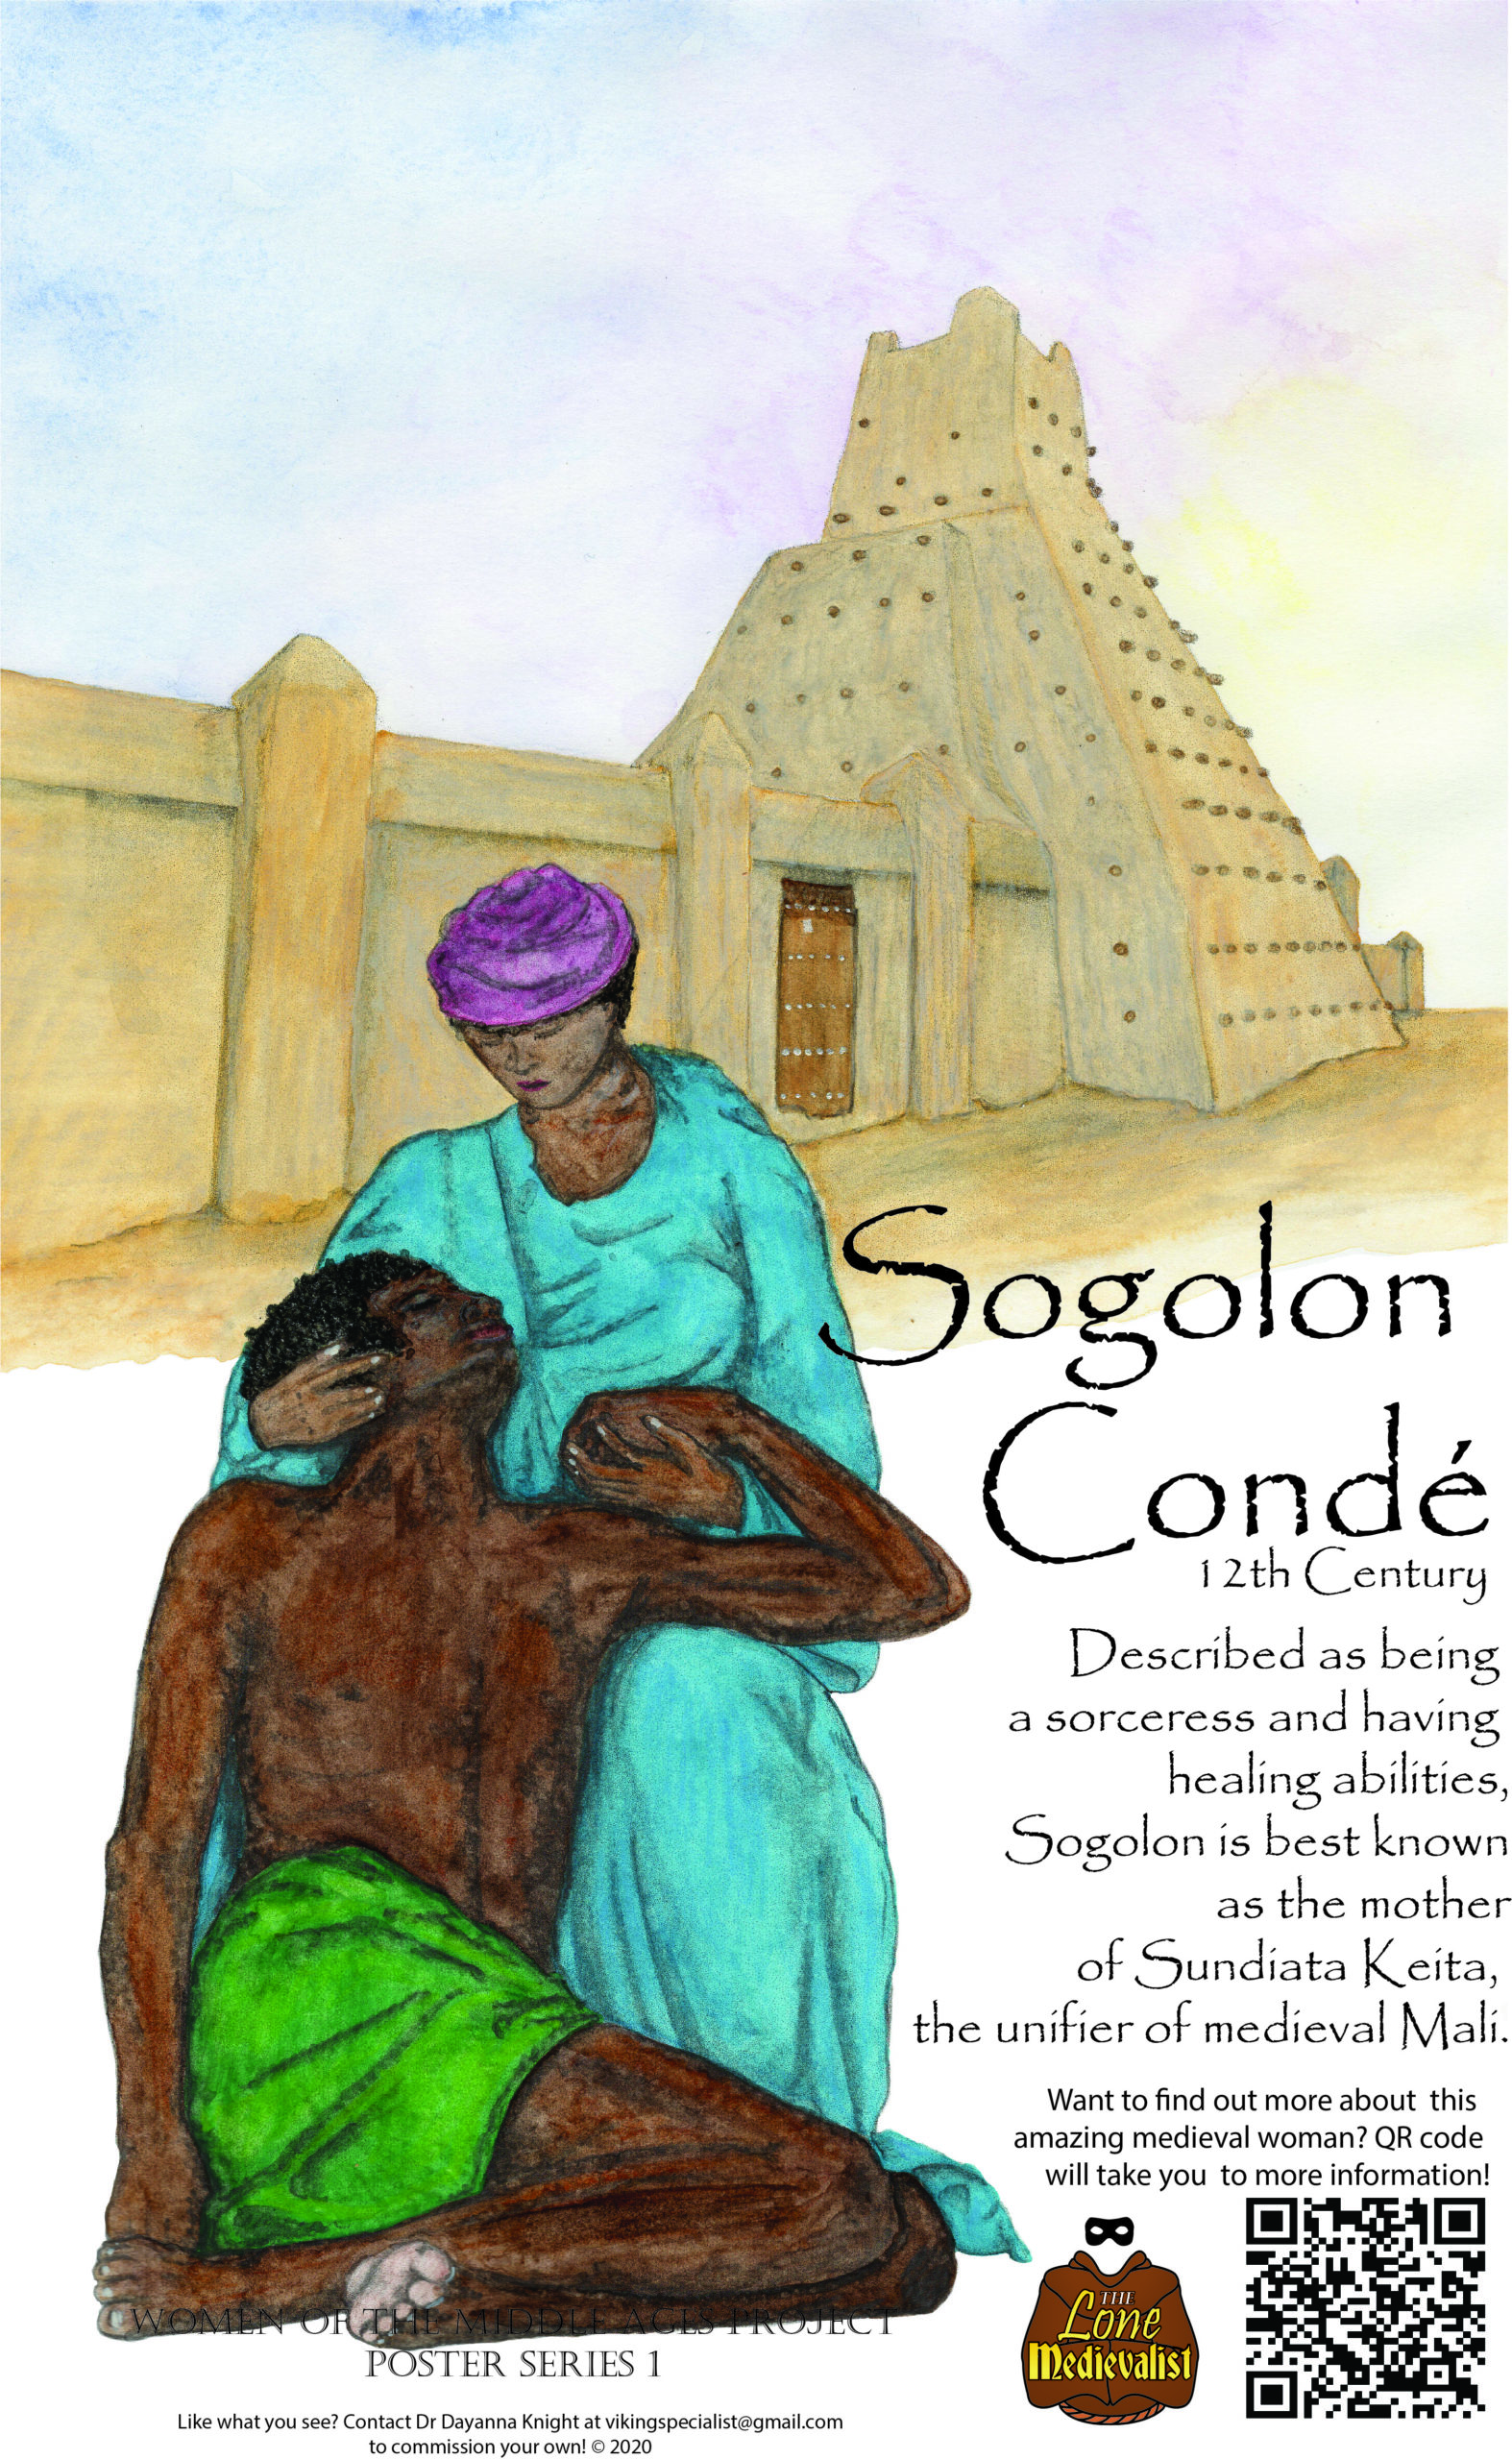 Poster with information about Sogolon Conde